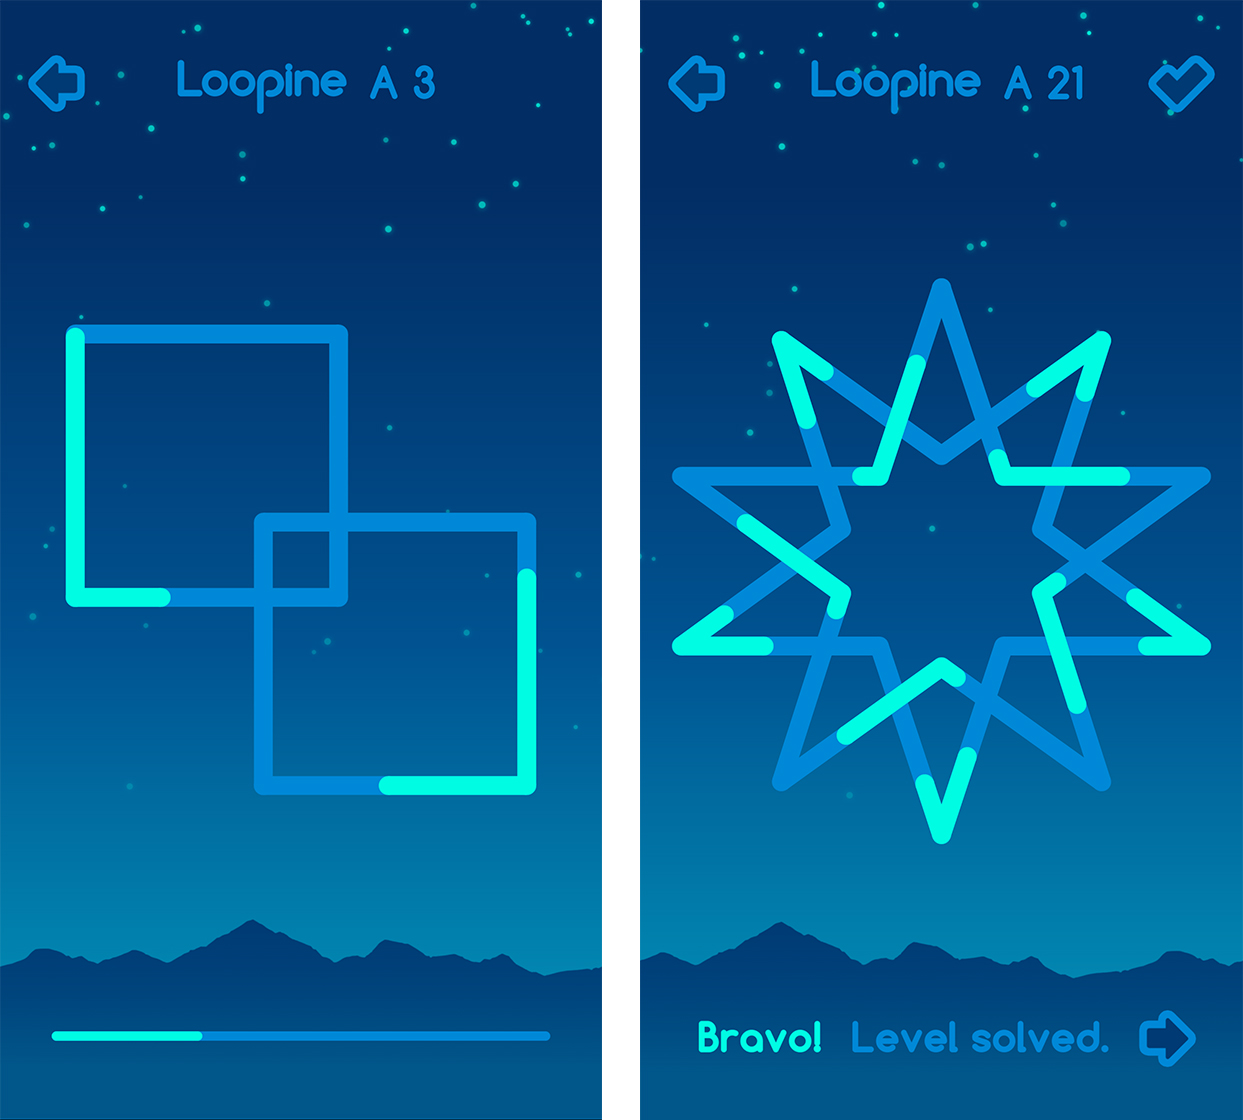 Loopine level 3 and 21